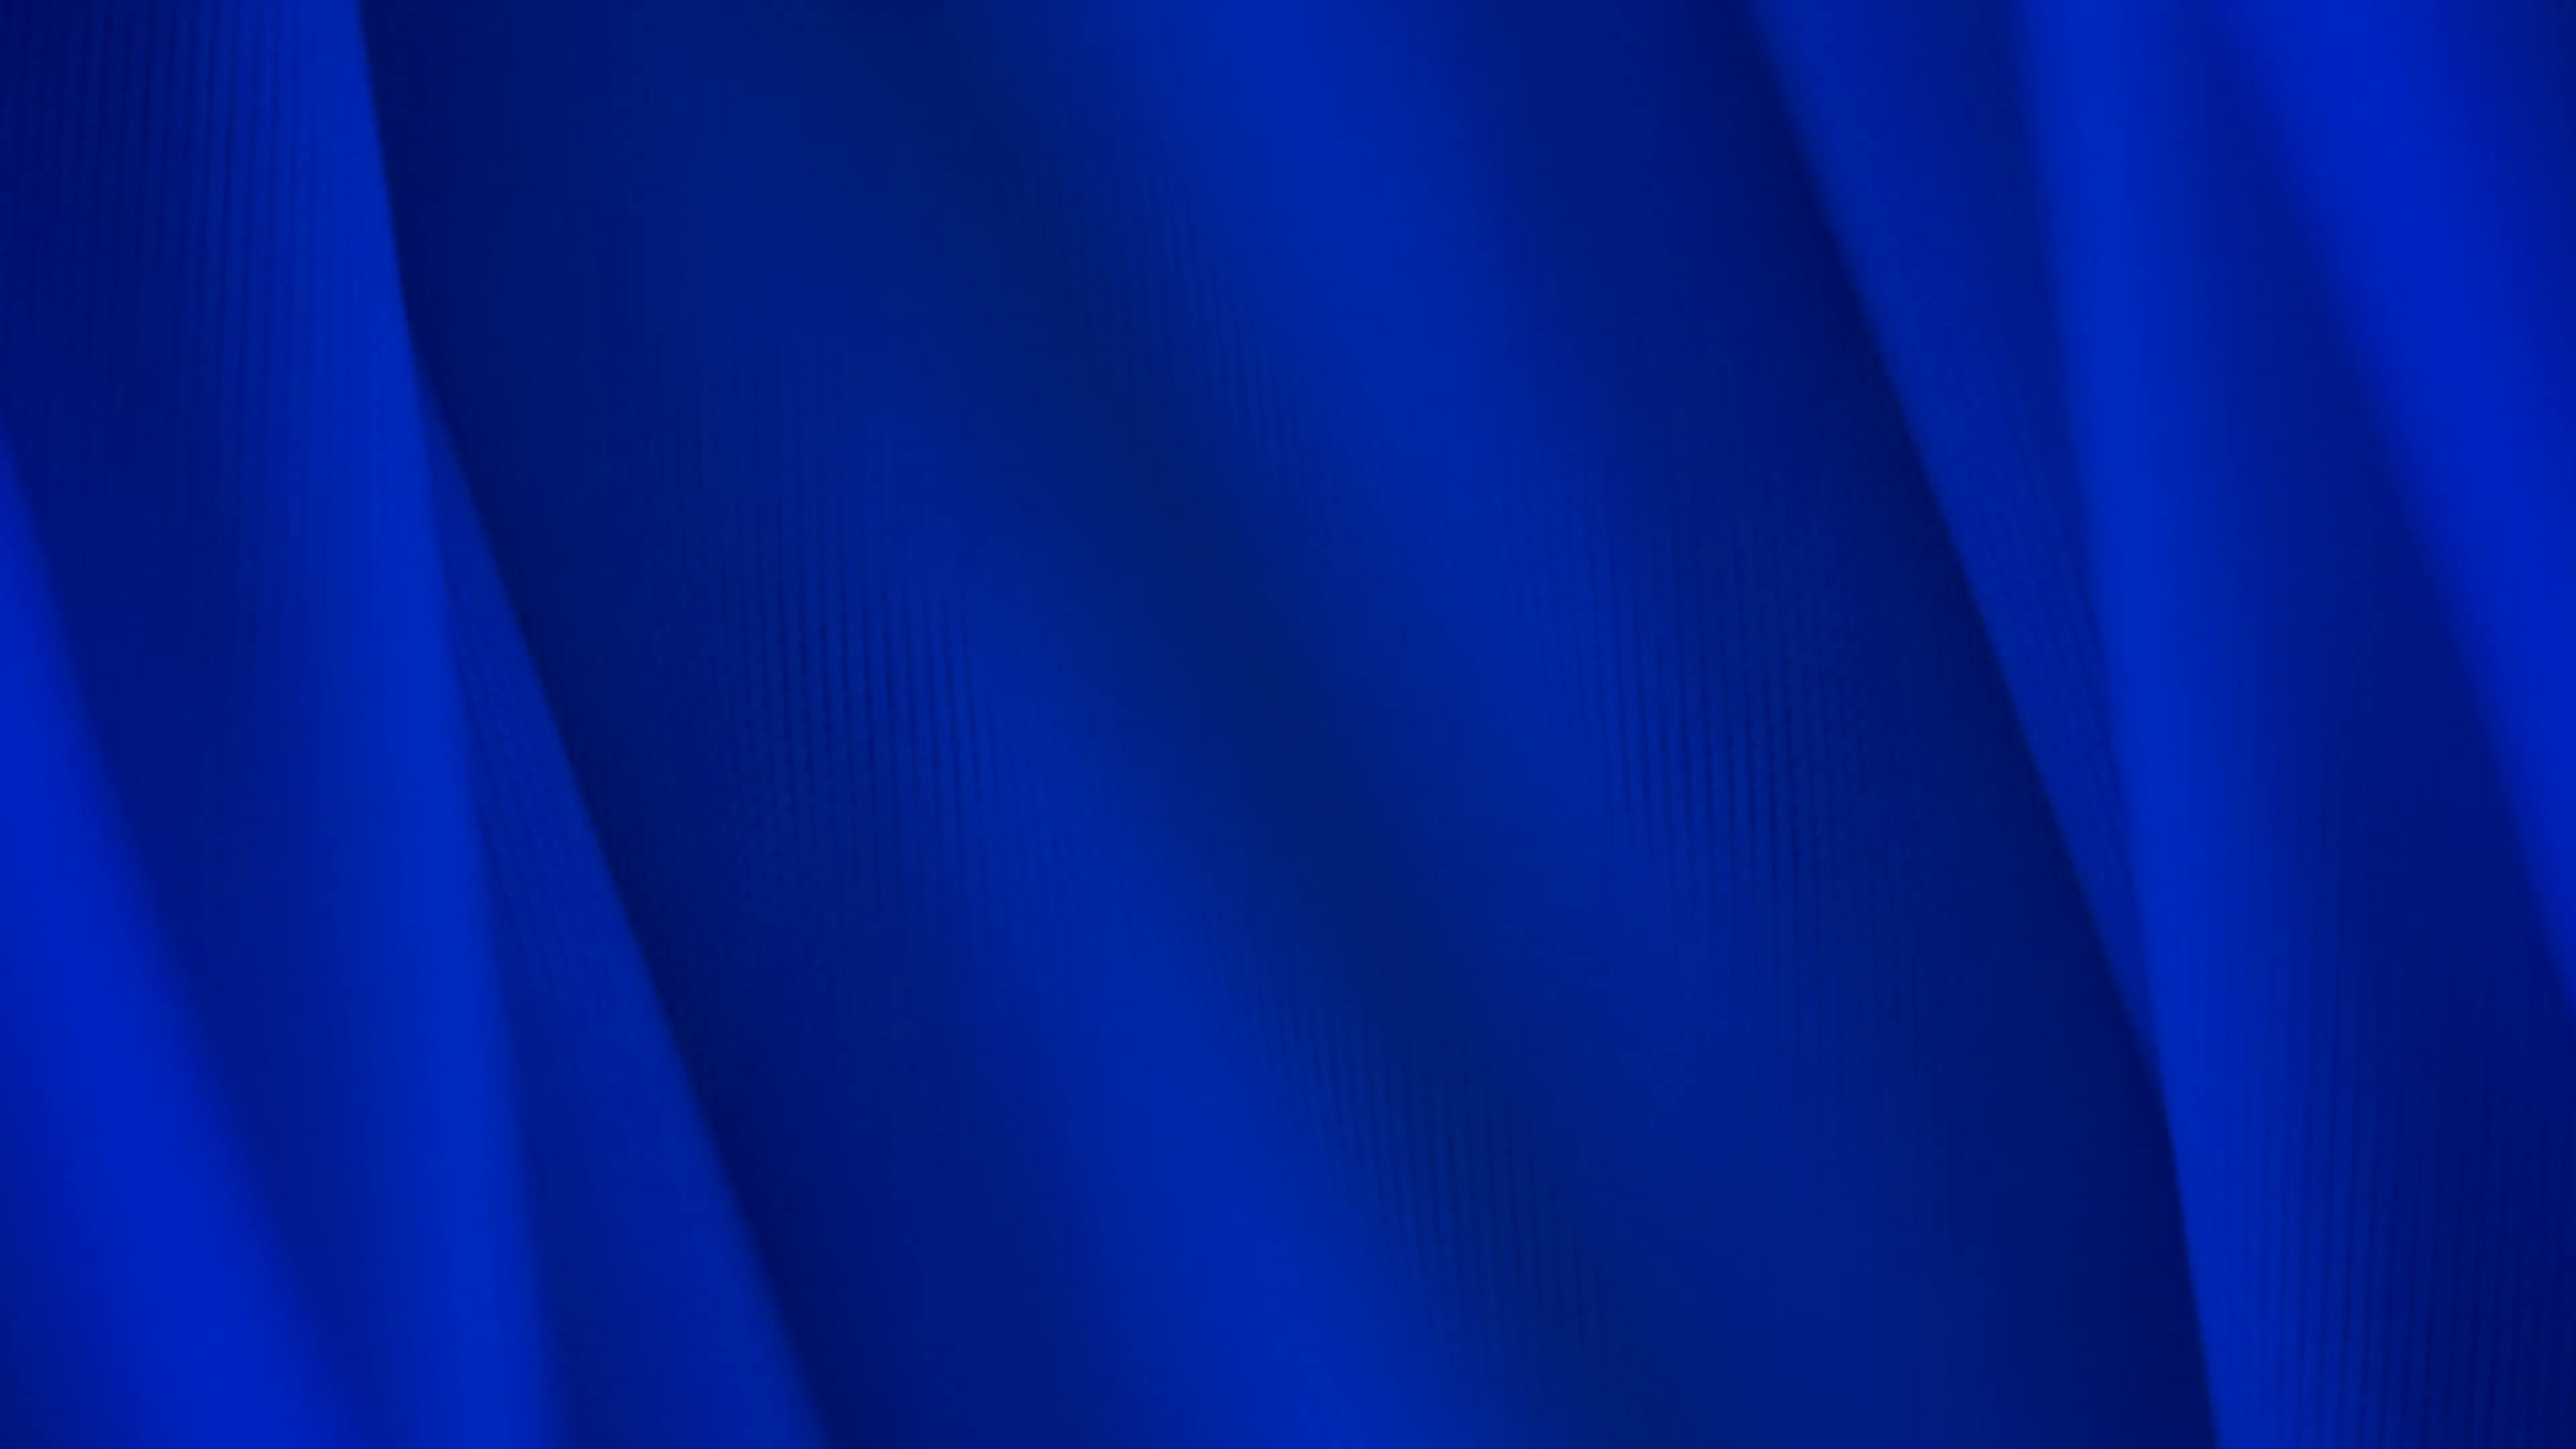 dark blue background 4k motion background - videoblocks